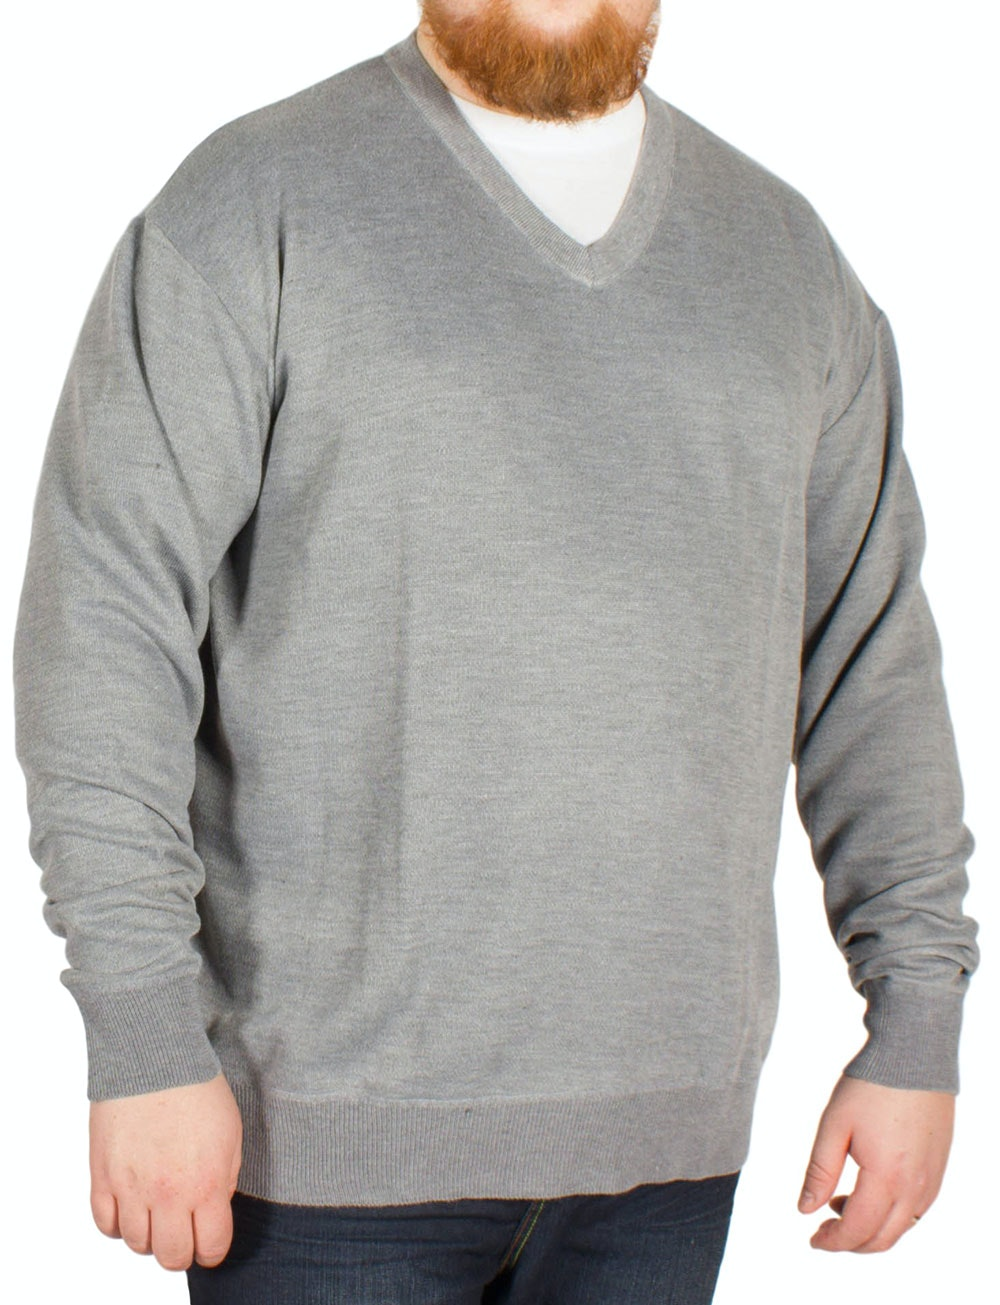 Pierre Roche V Neck Knitted Jumper Grey